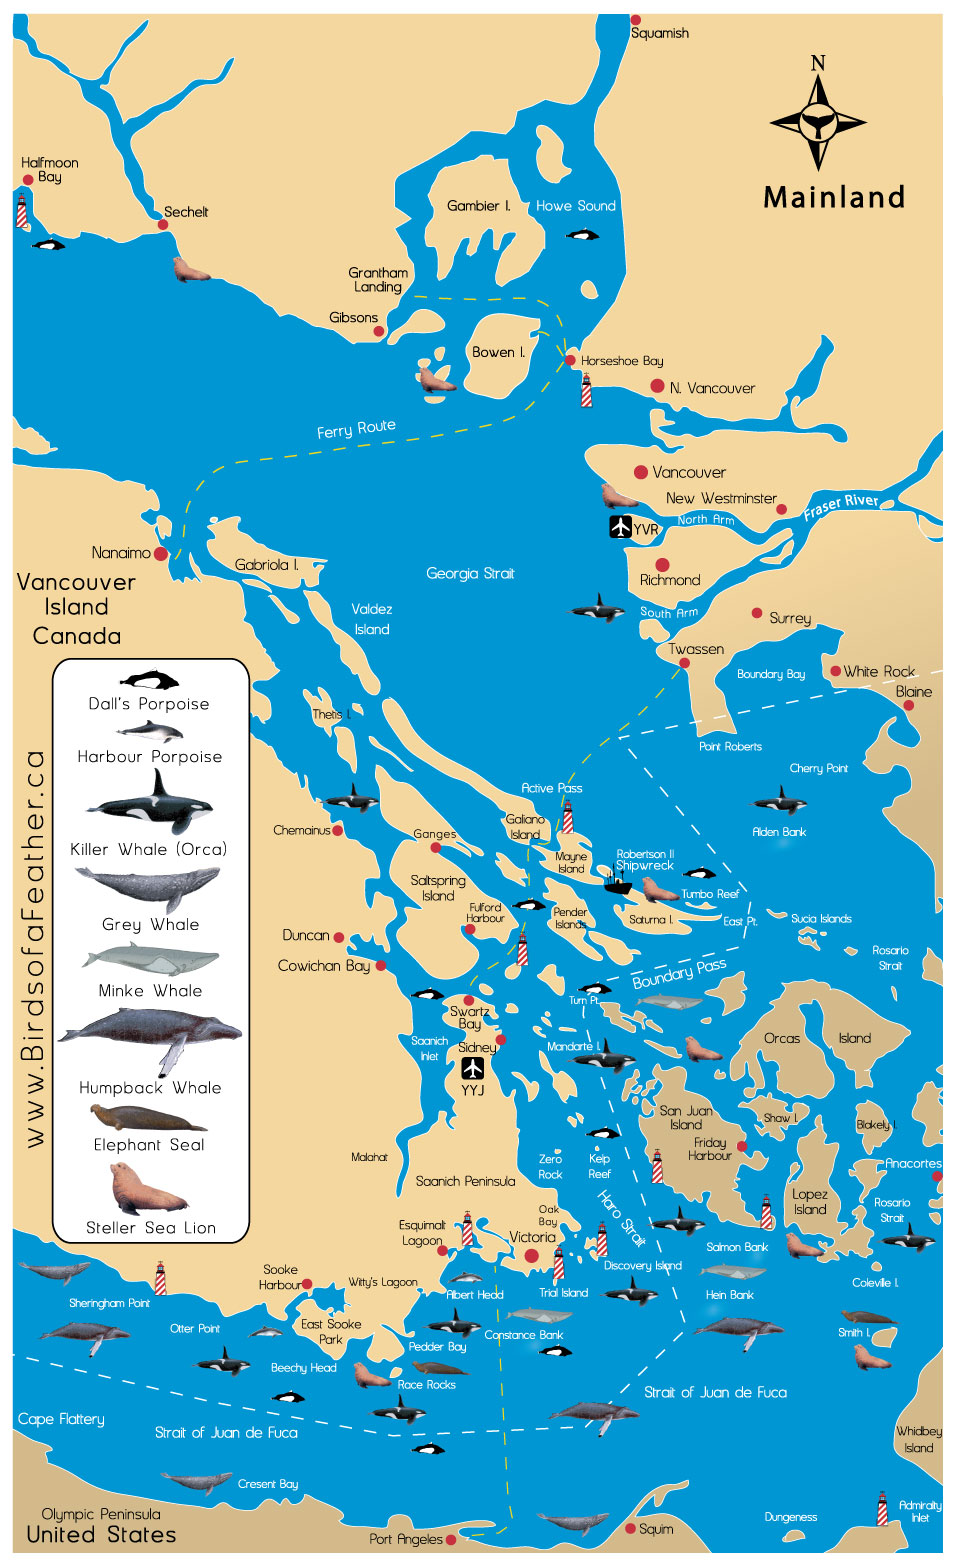 Orcas Island Whale Watching Tours